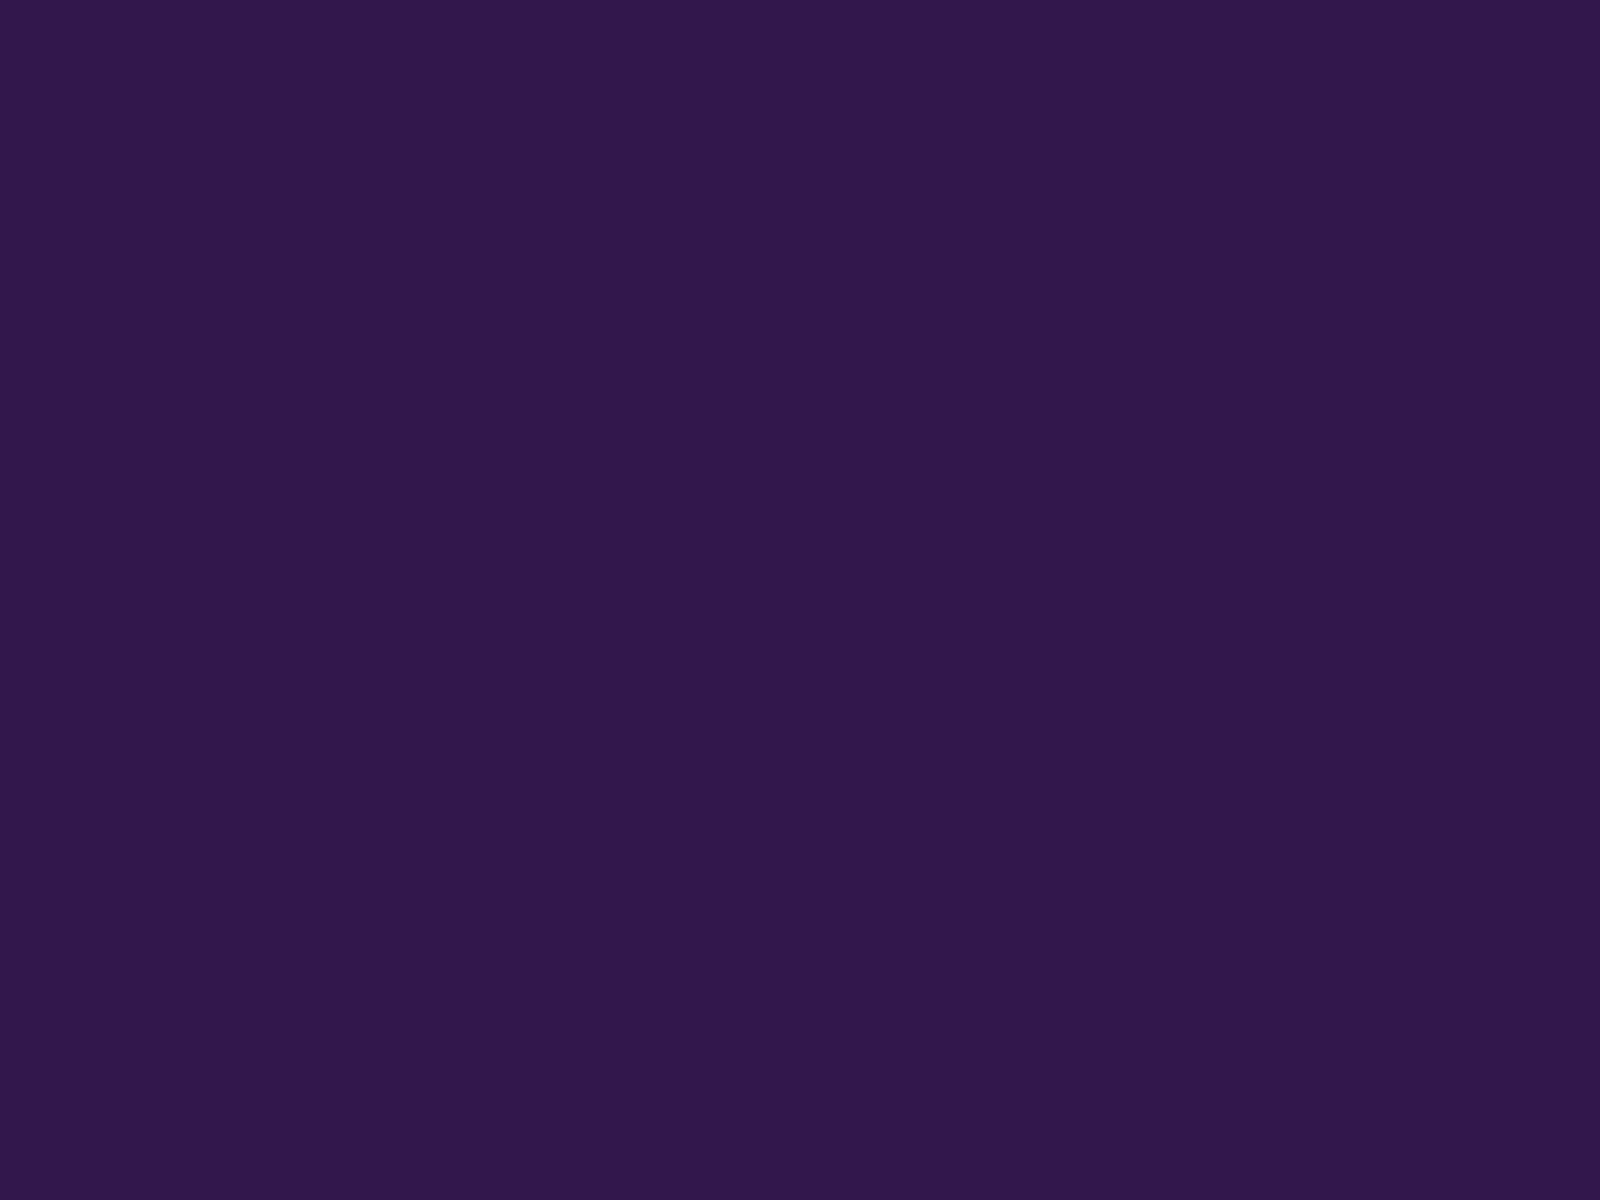 1600x1200 Russian Violet Solid Color Background